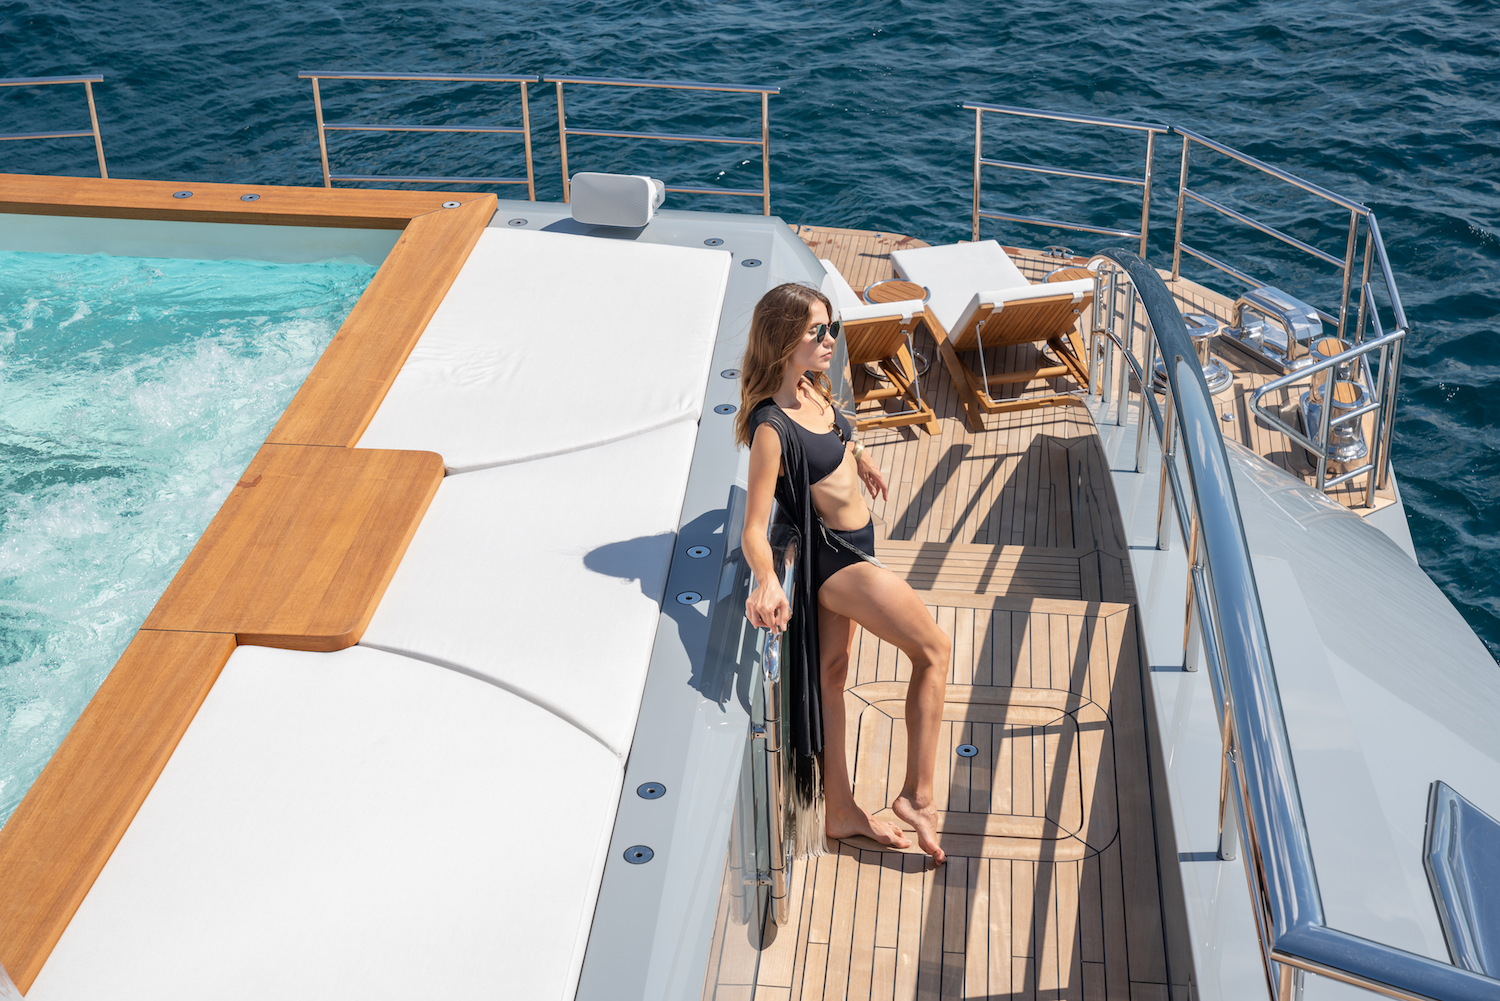 Model Next To The Pool On A Superyacht